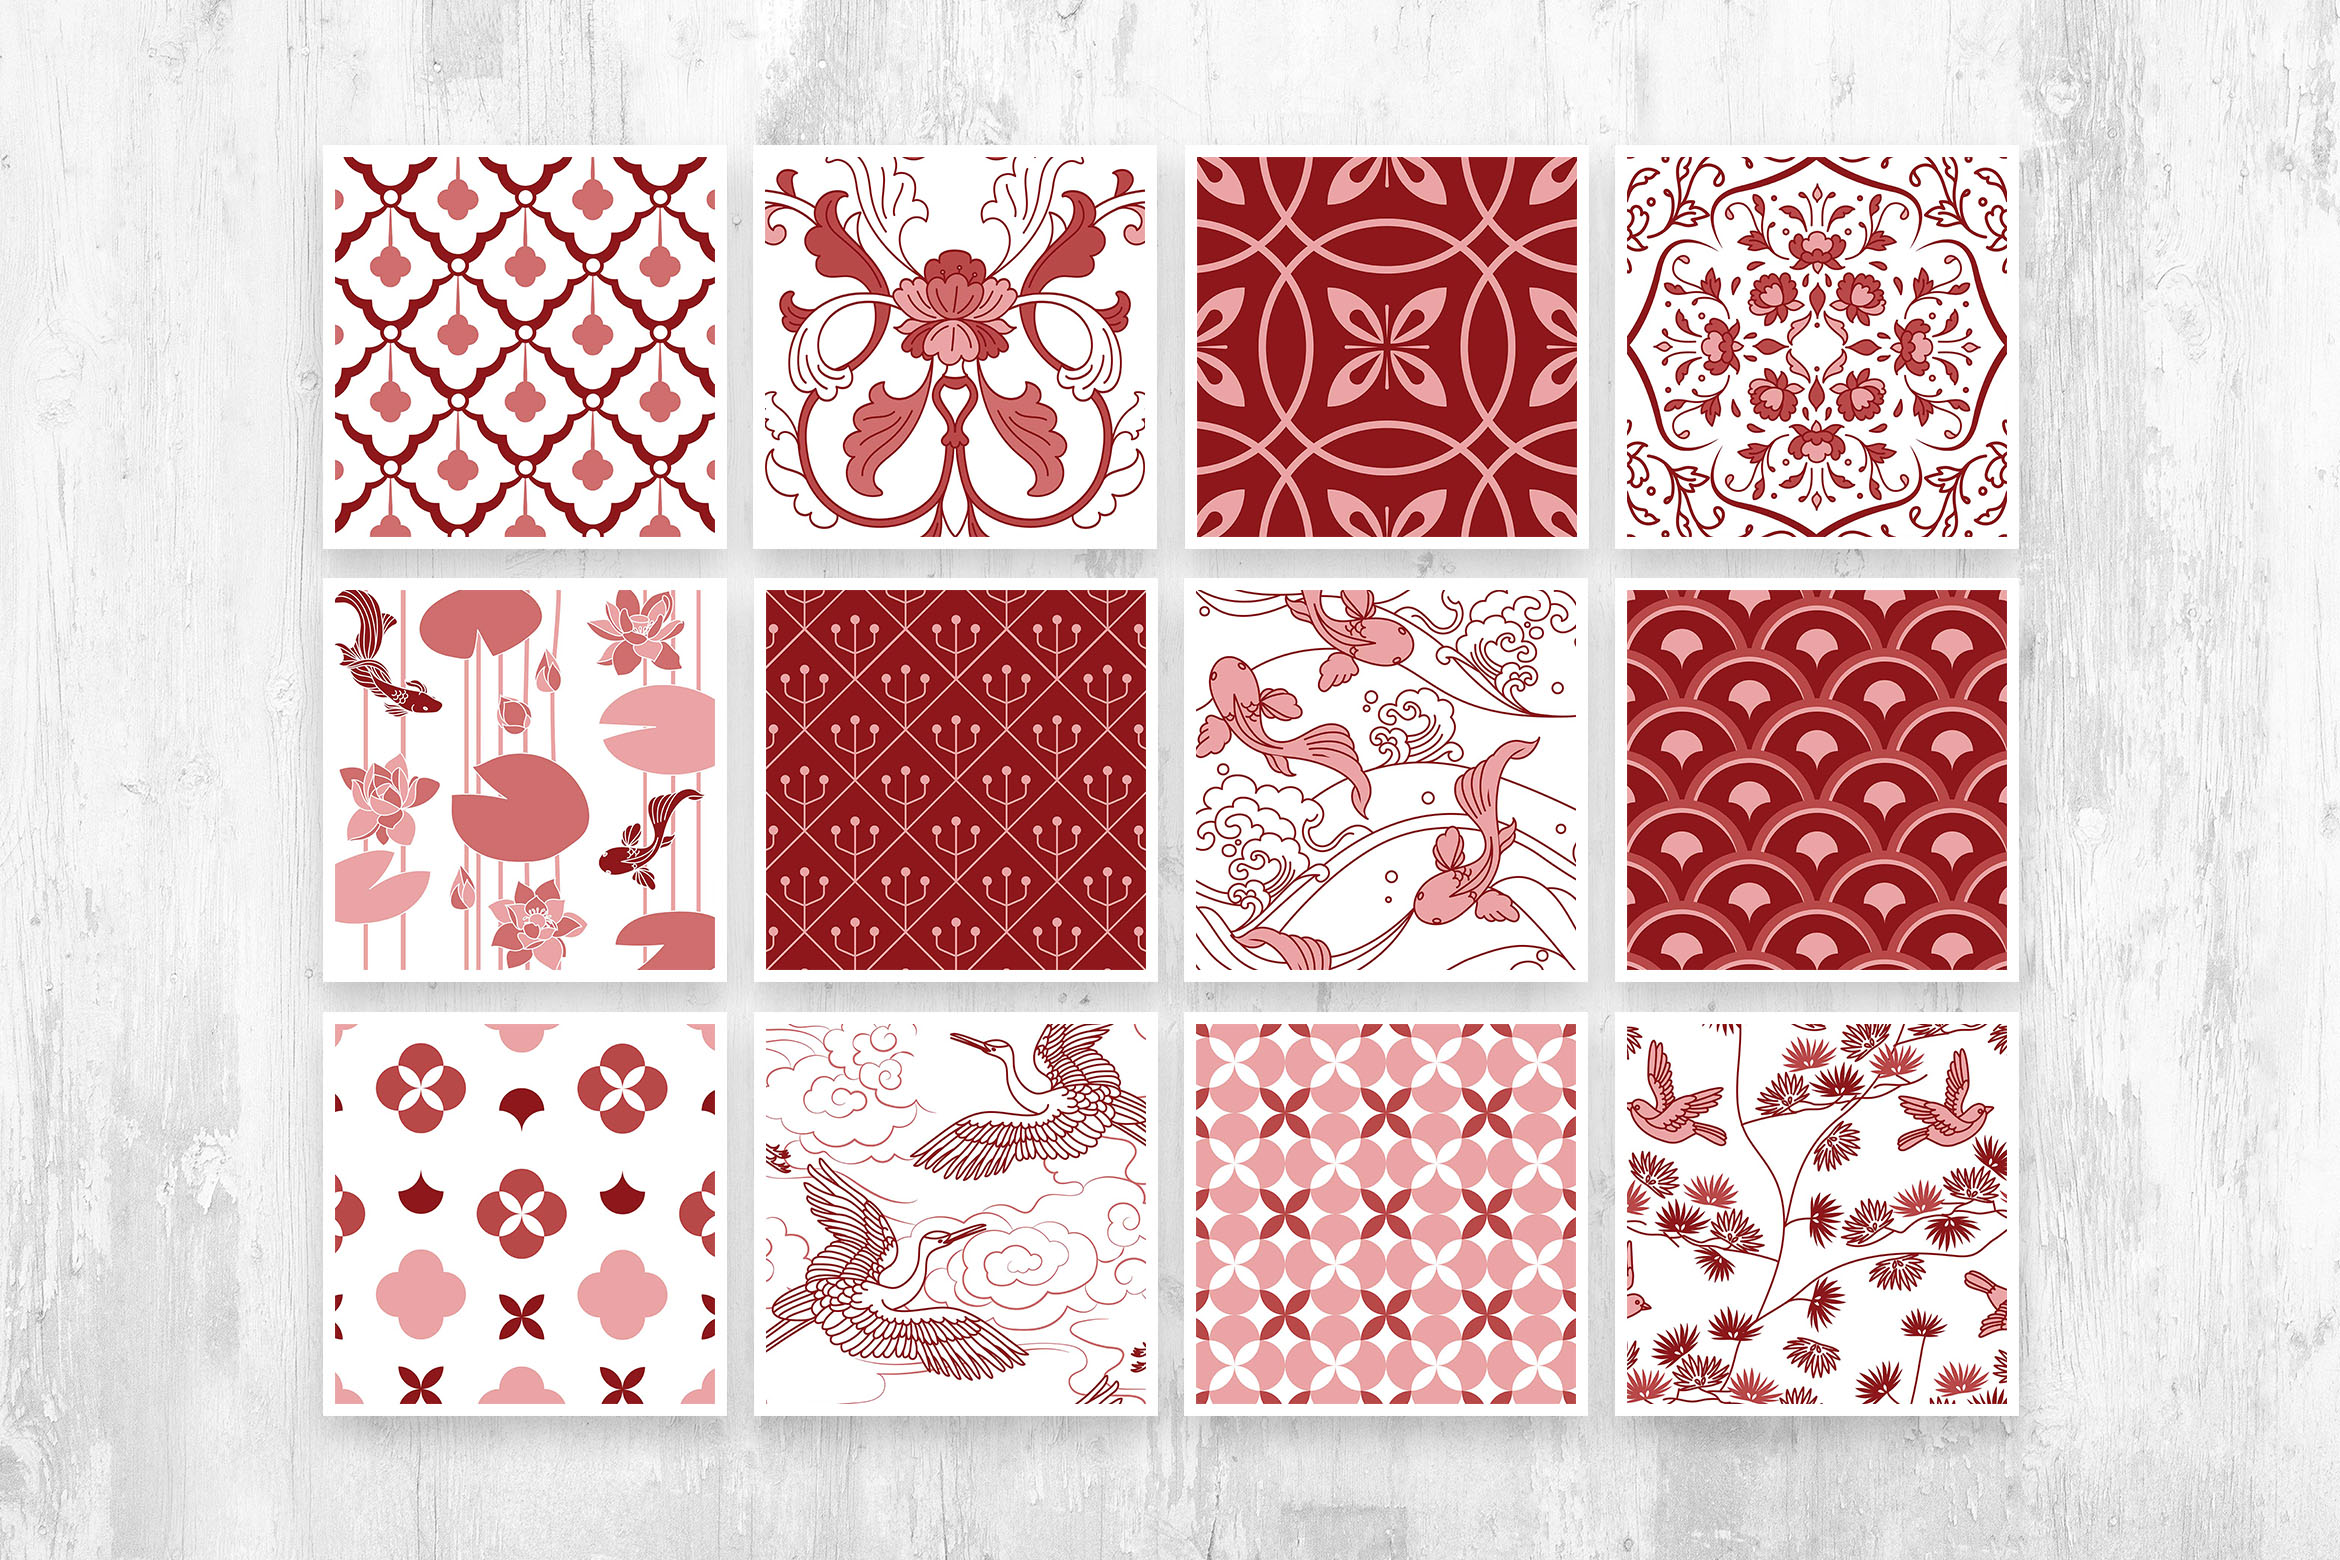 Japan: The Gigantic Textures and Patterns Collection